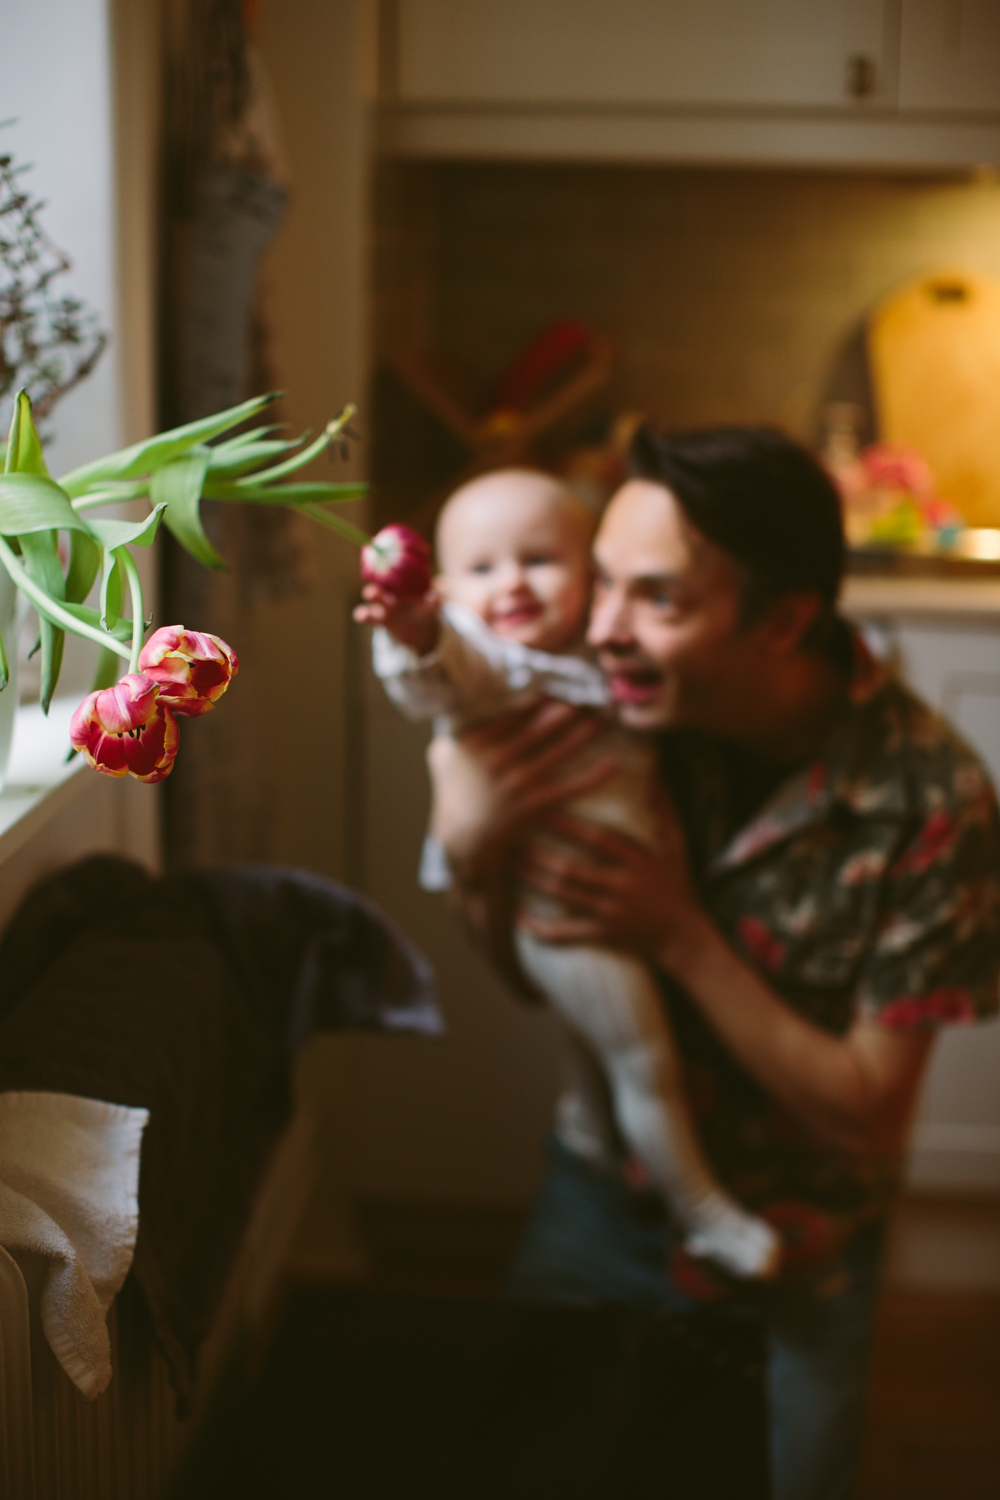 Father and daughter playing with tulips